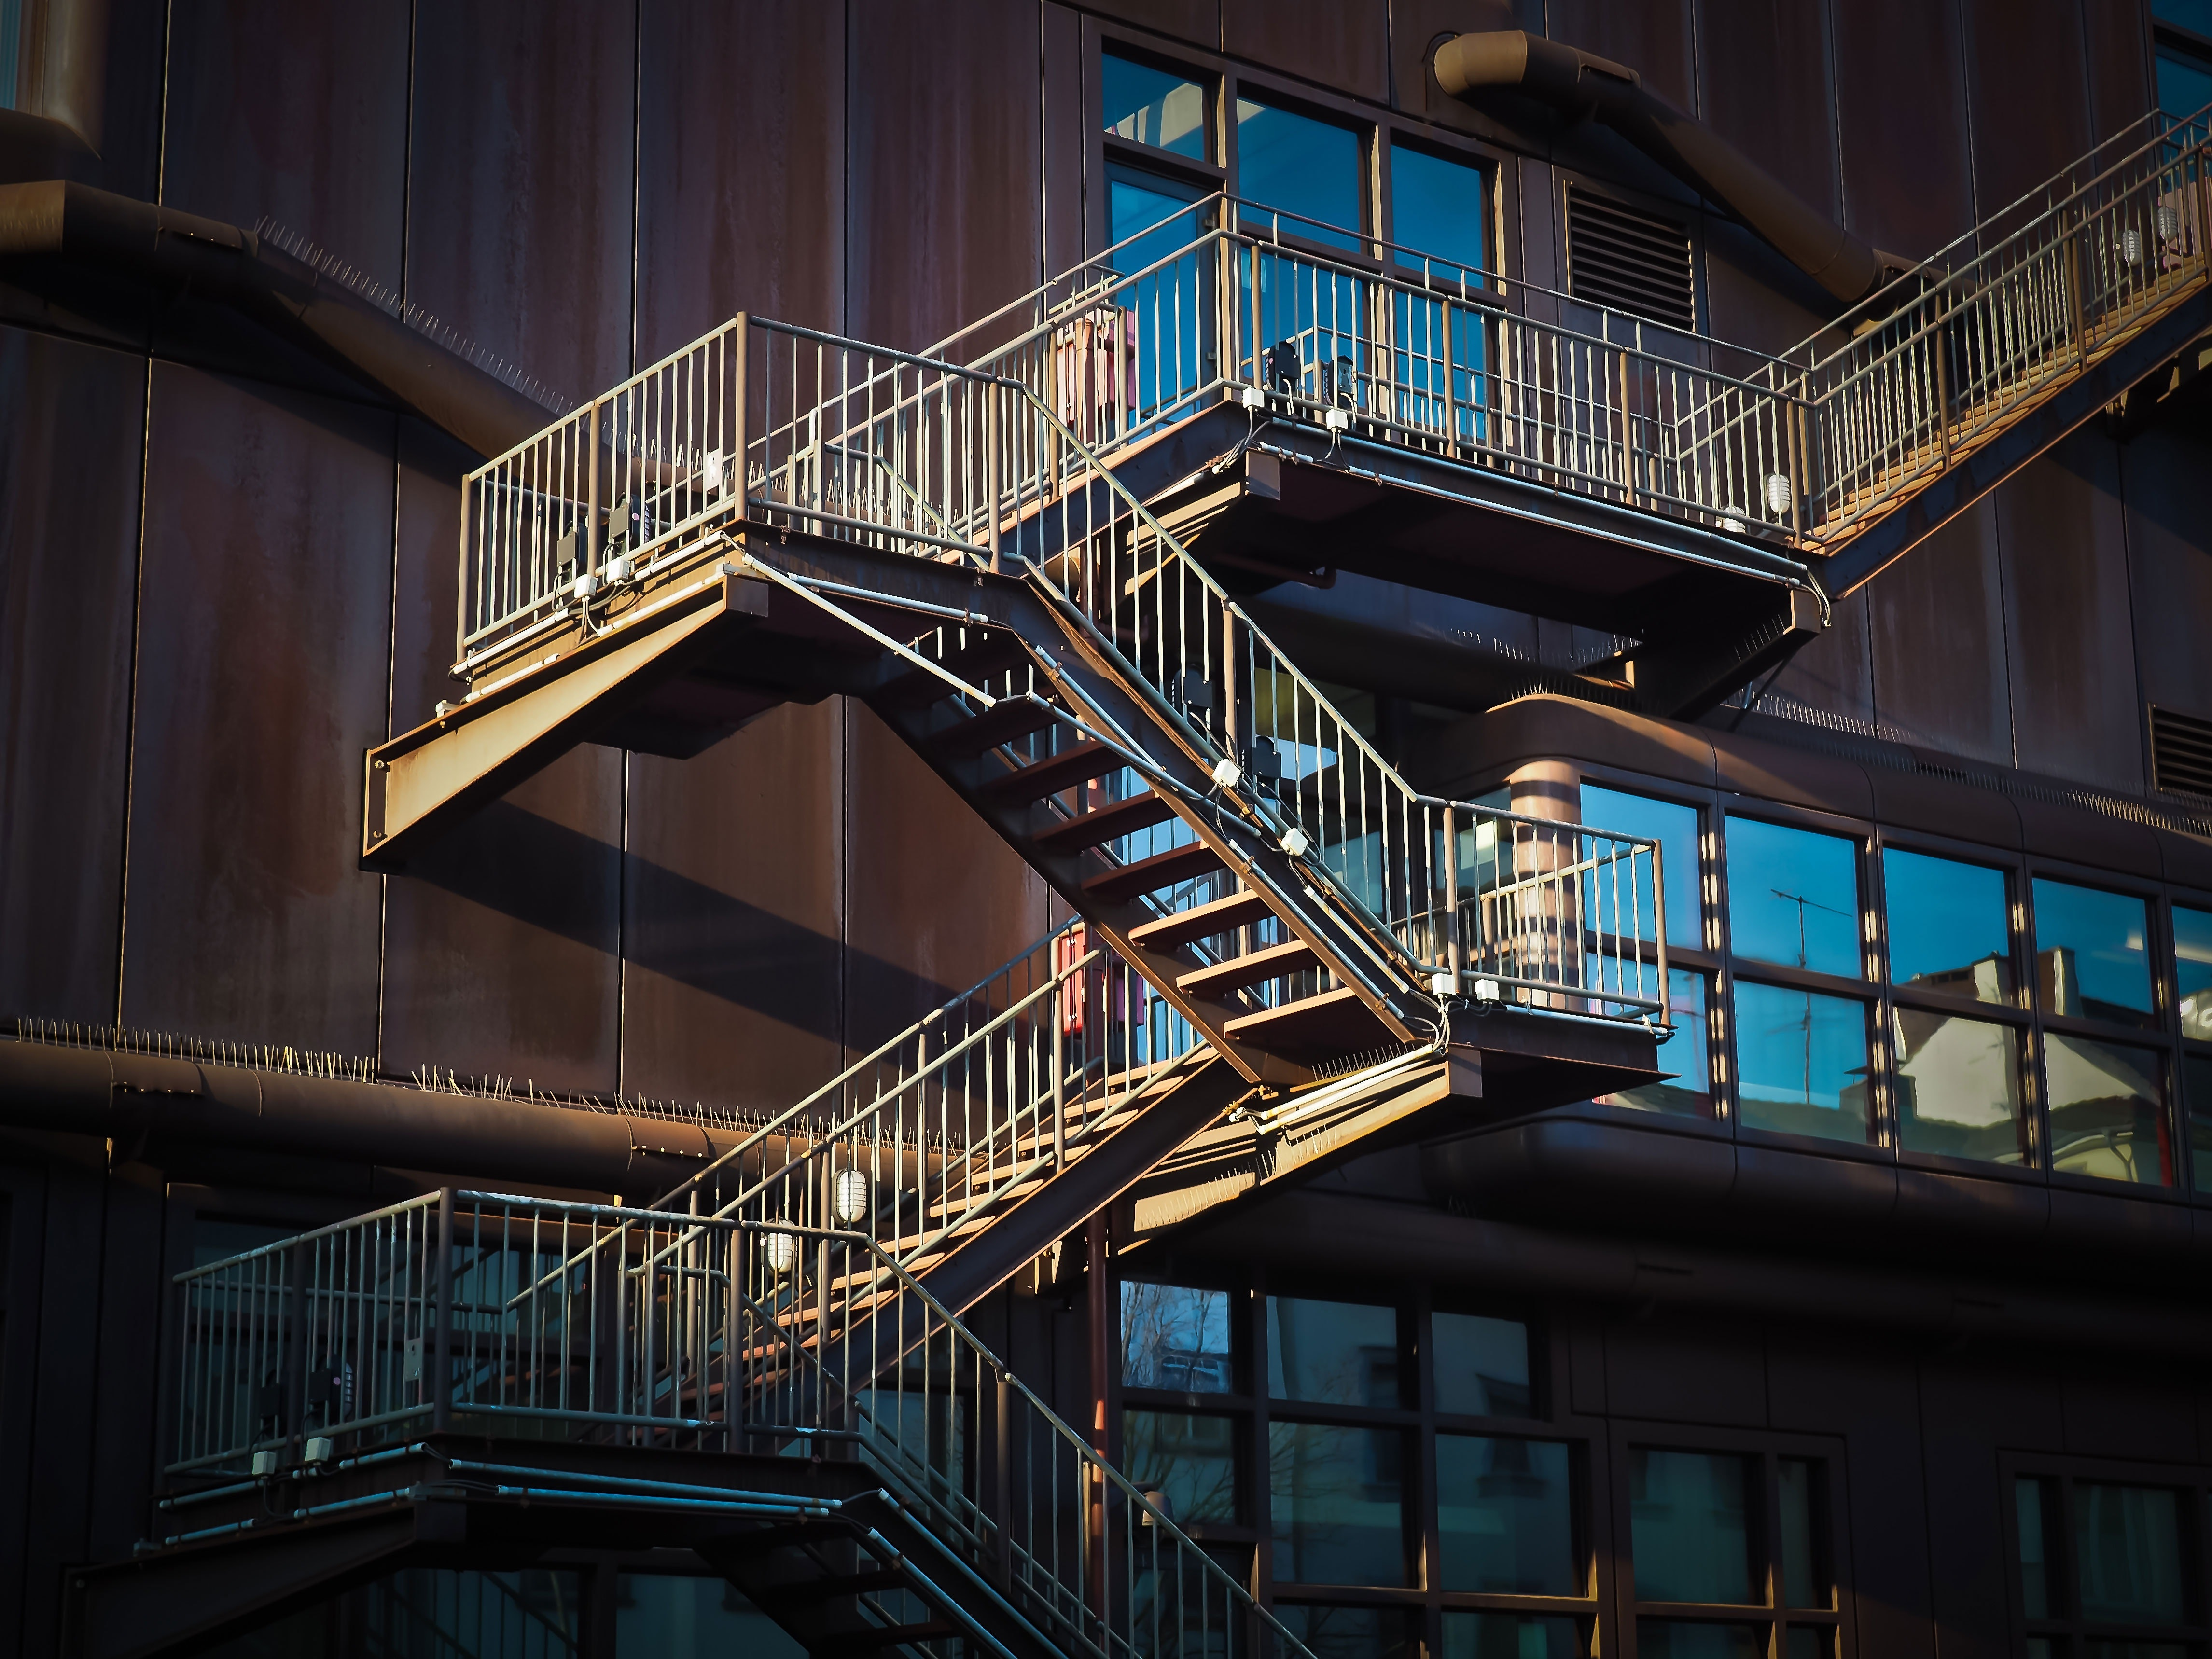 Low Angle View of Spiral Stairs, Stairs, Steel structure, Staircase, Stainless, HQ Photo